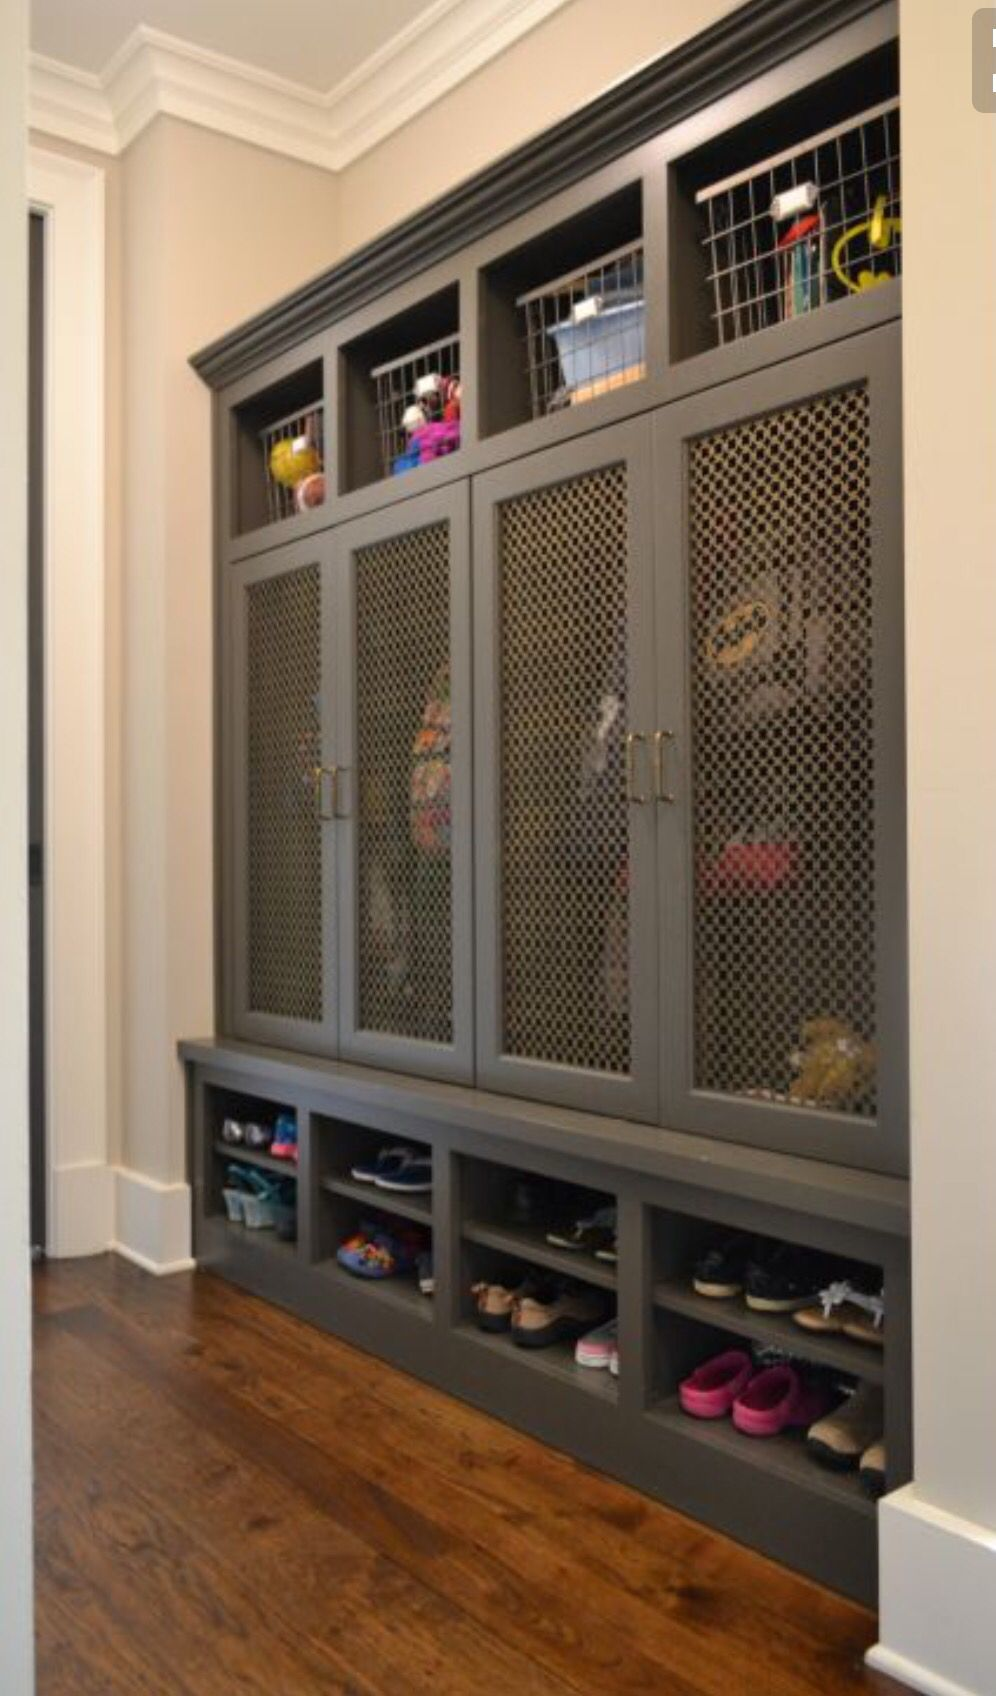 Locker Style Bedroom Furniture Locker Style Storage Storage Organization Pinterest Style